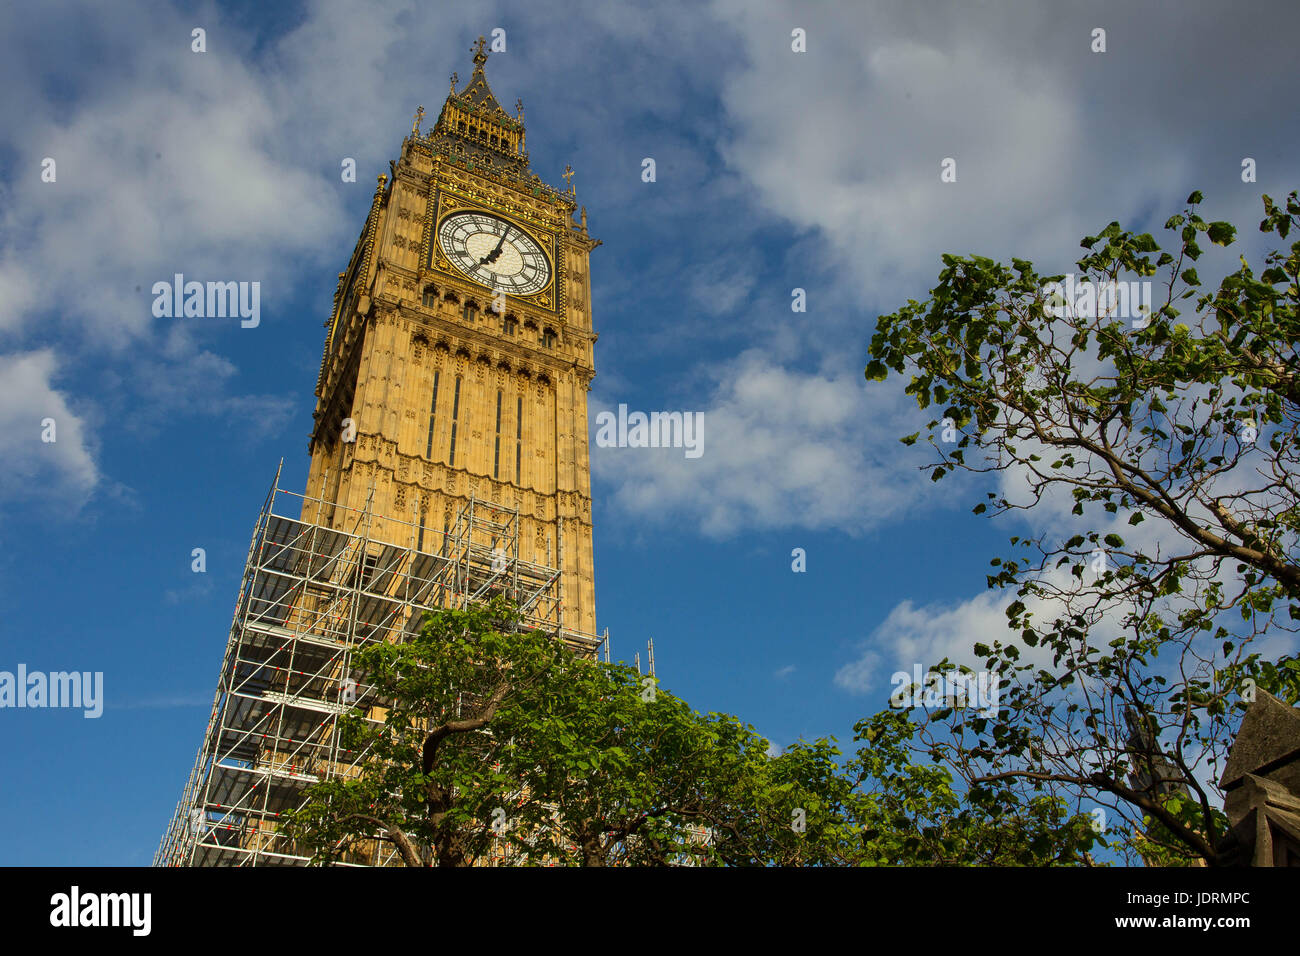 Scaffolding has been erected around the Elizabeth Tower, home to the bell Big Ben at the Palace of Westminster. - Stock Image